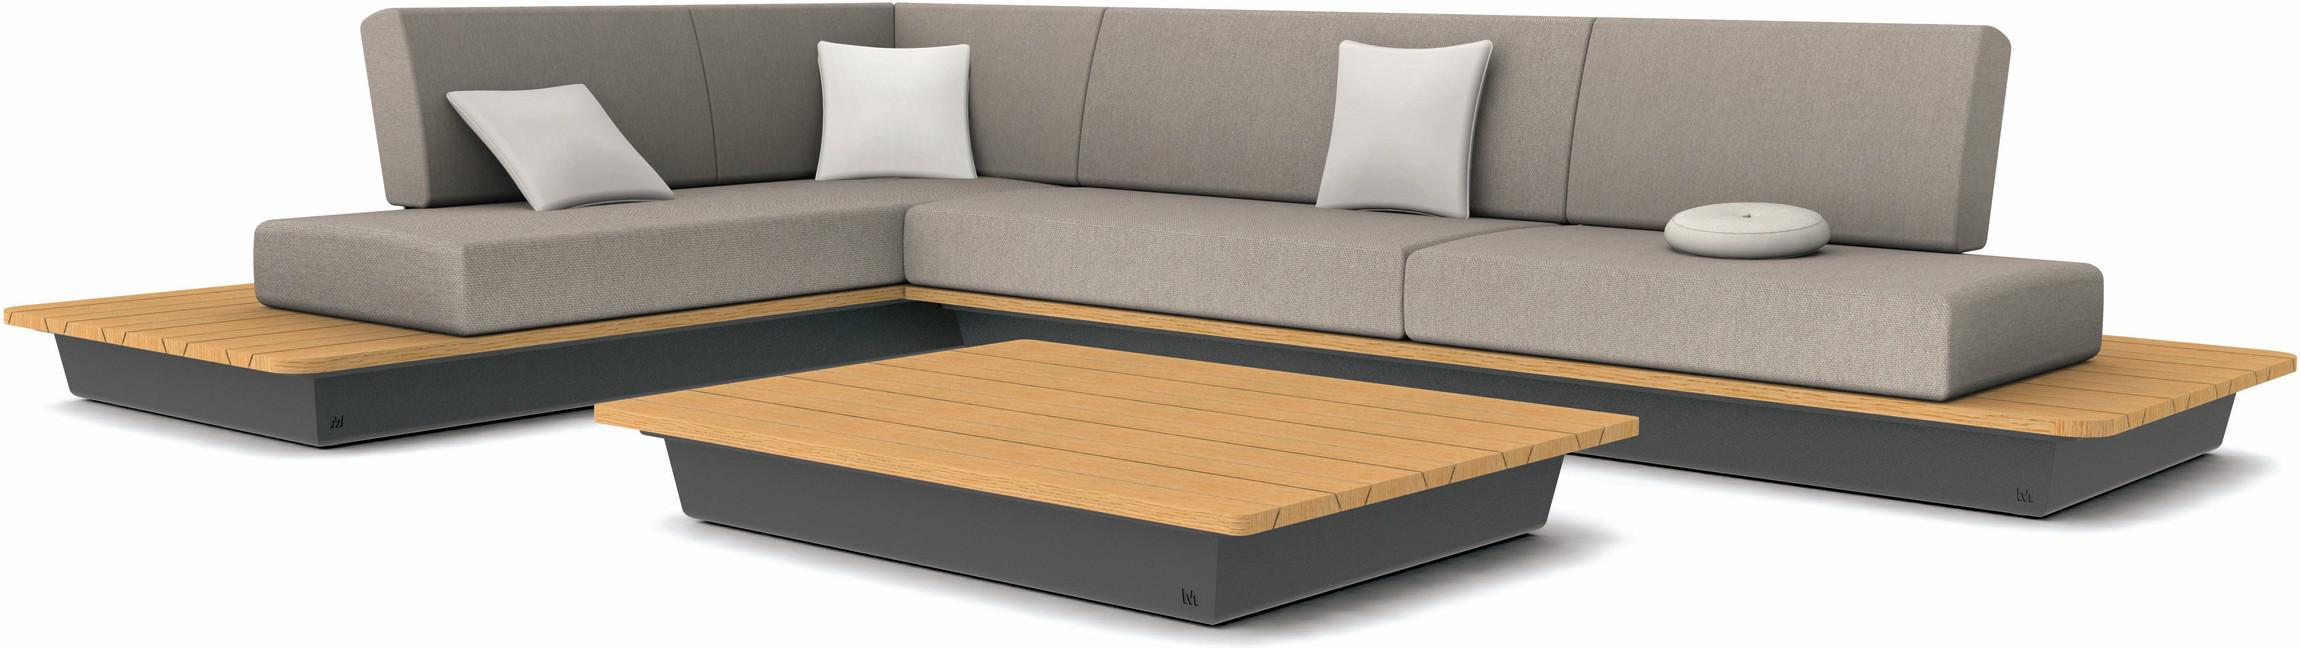 Air concept 1 - lava - wood top iroko